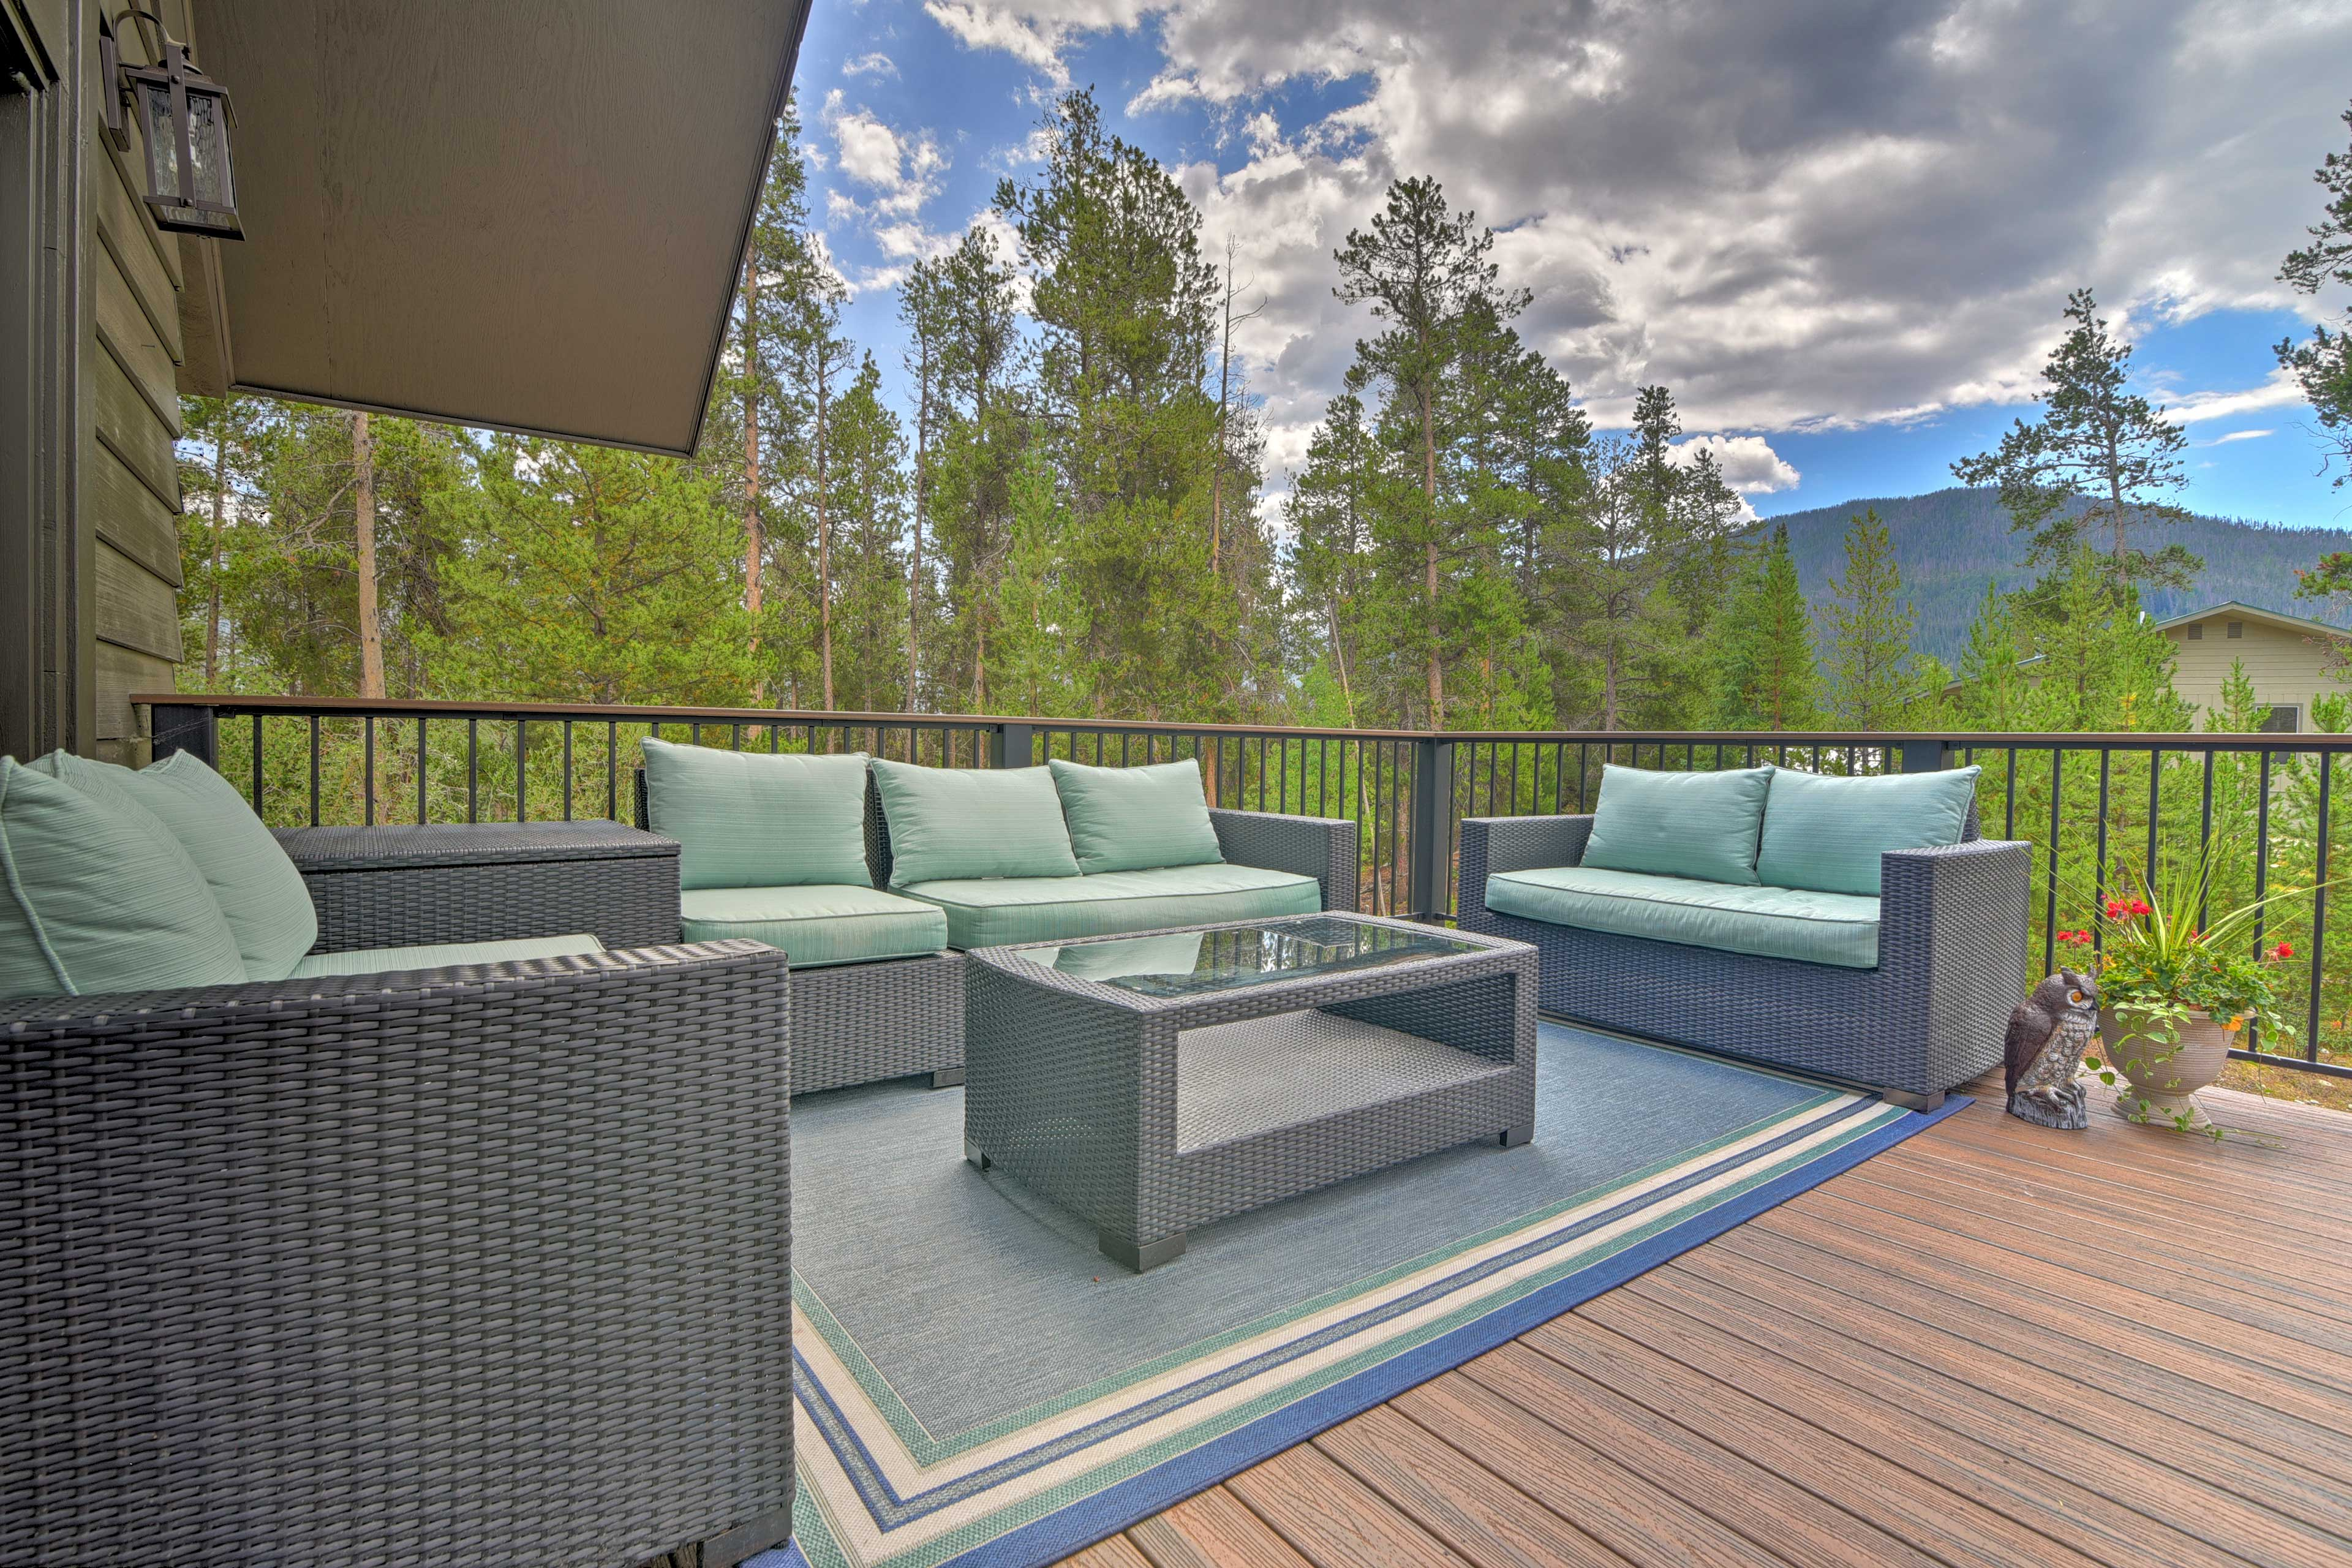 The back deck will easily become your favorite spot on the property.